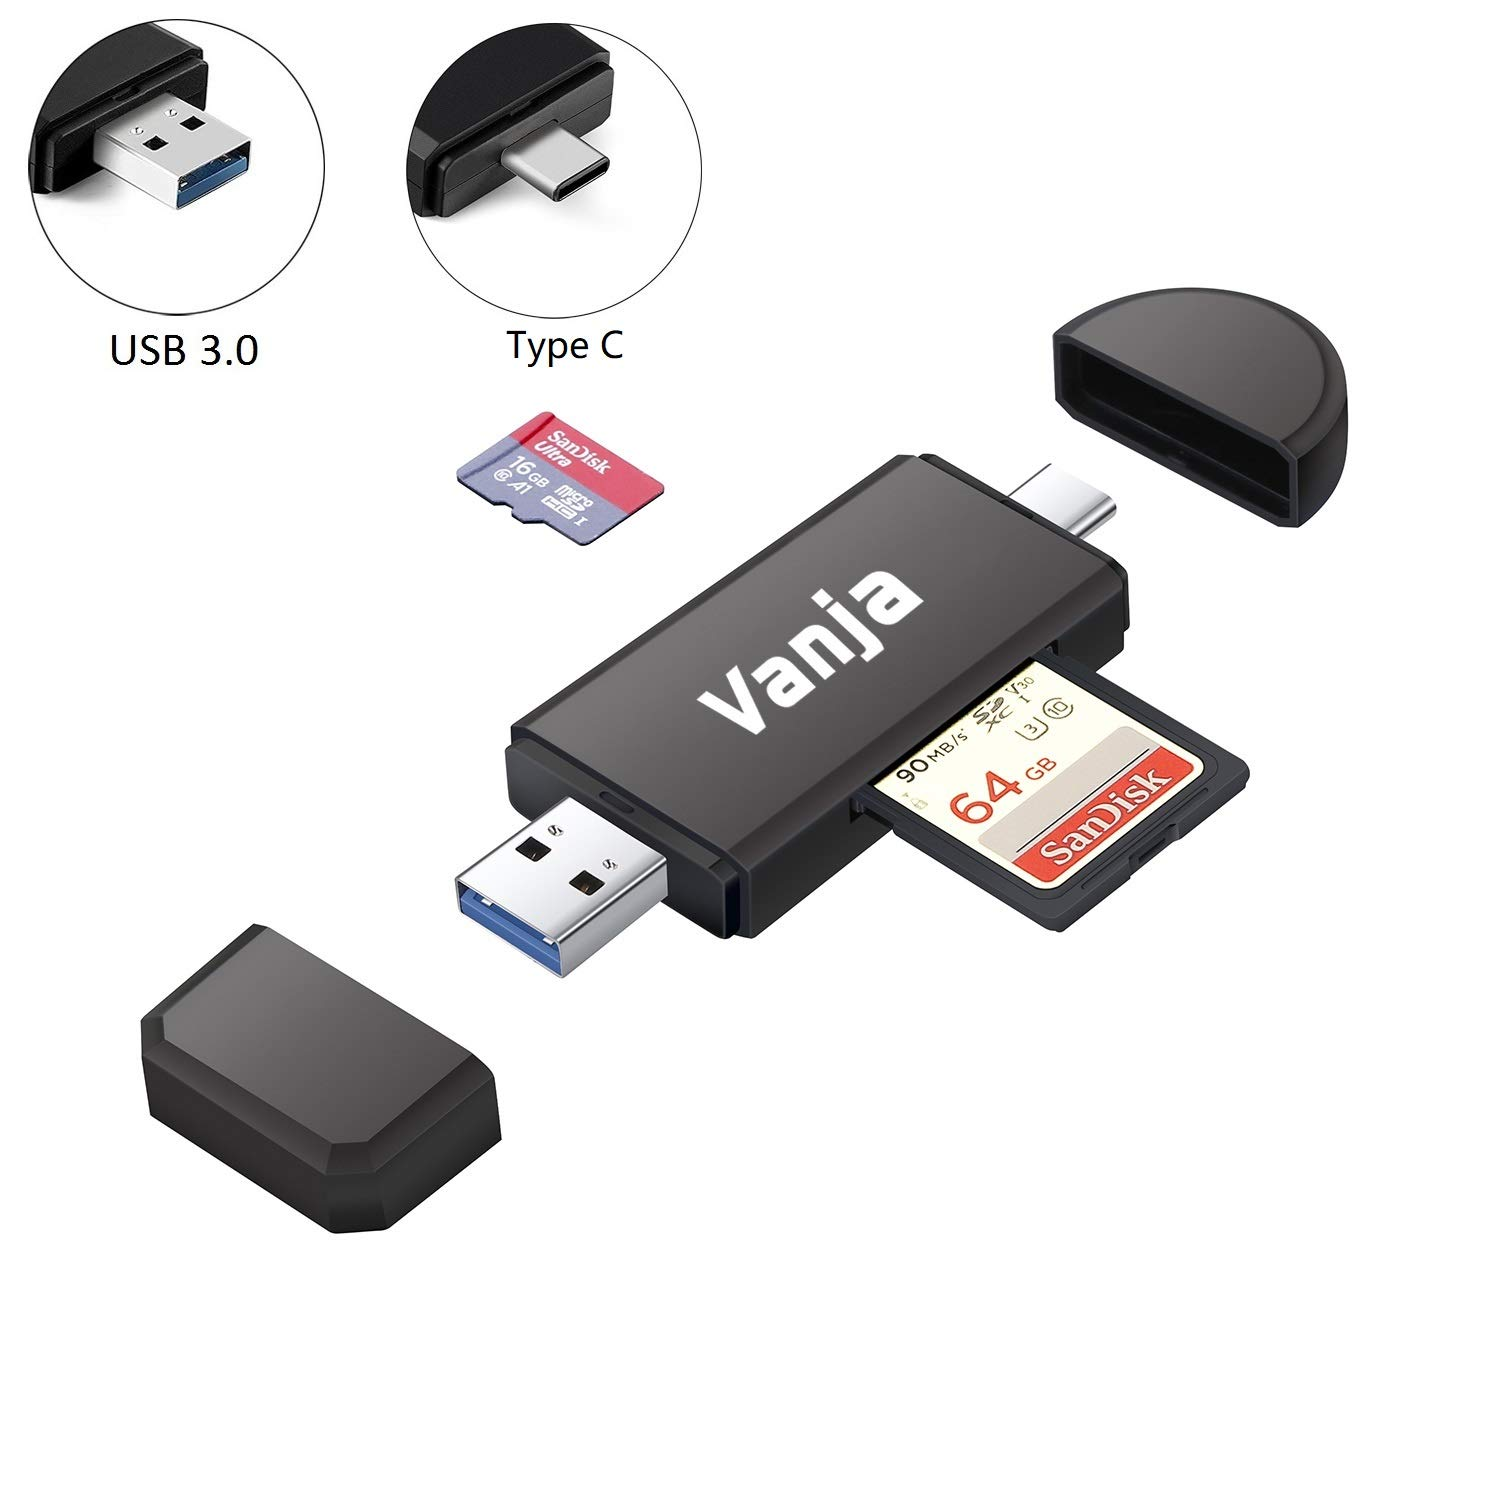 Vanja USB Type C SD Card Reader, USB 3.0 Micro SD Card Reader OTG Adapter for TF, SD, Micro SD, SDXC, SDHC, MMC, RS-MMC, Micro SDXC, Micro SDHC, UHS-I for Mac, Windows, Linux, PC, Laptop by Vanja